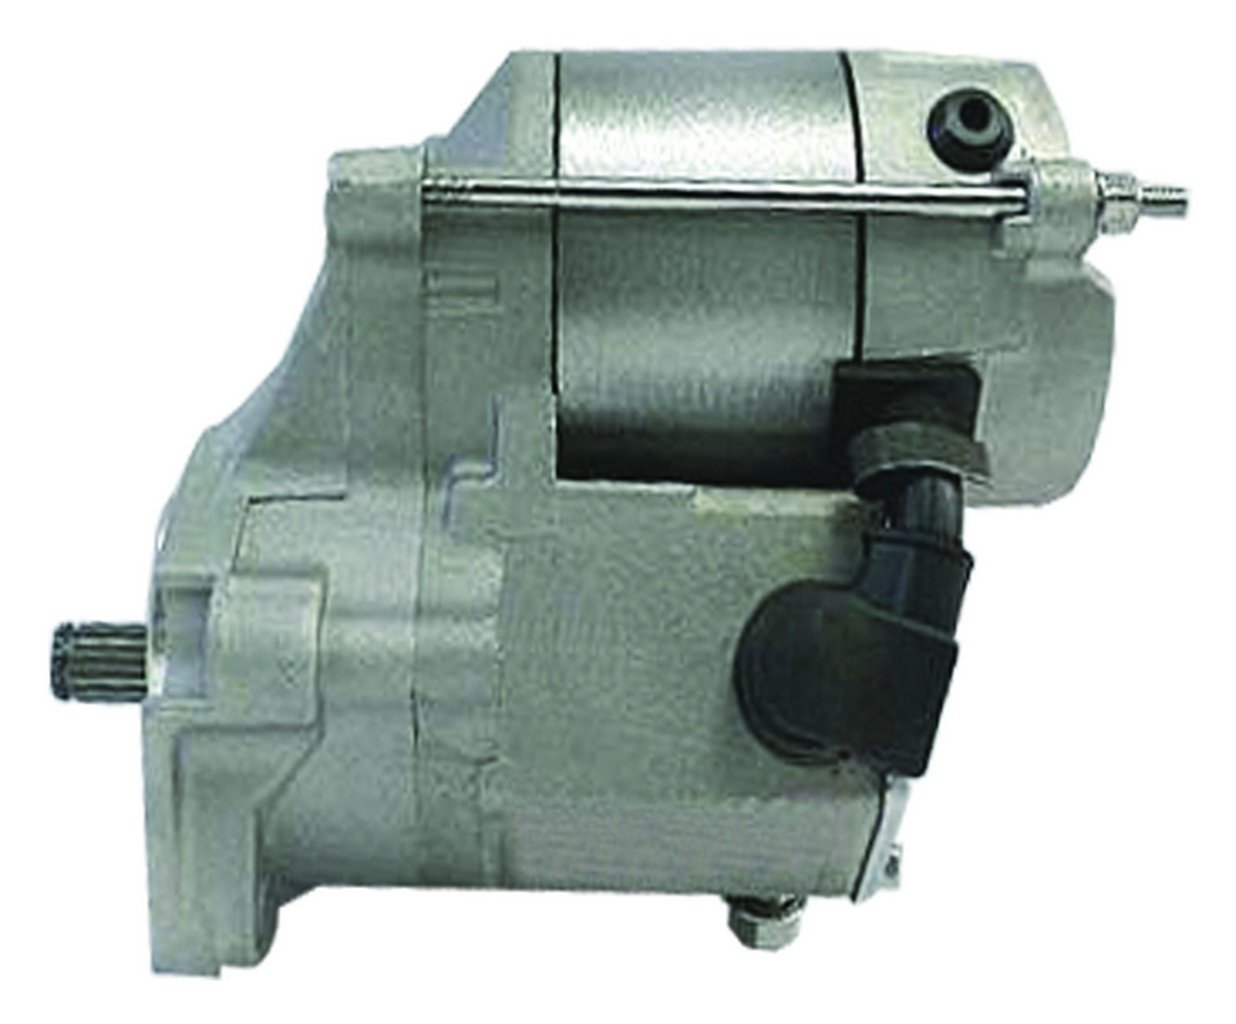 Parts Player New Starter Fits OEM FINISH 1.4 KW Harley Davidson 31553-94, 31553-94A, 31559-99A